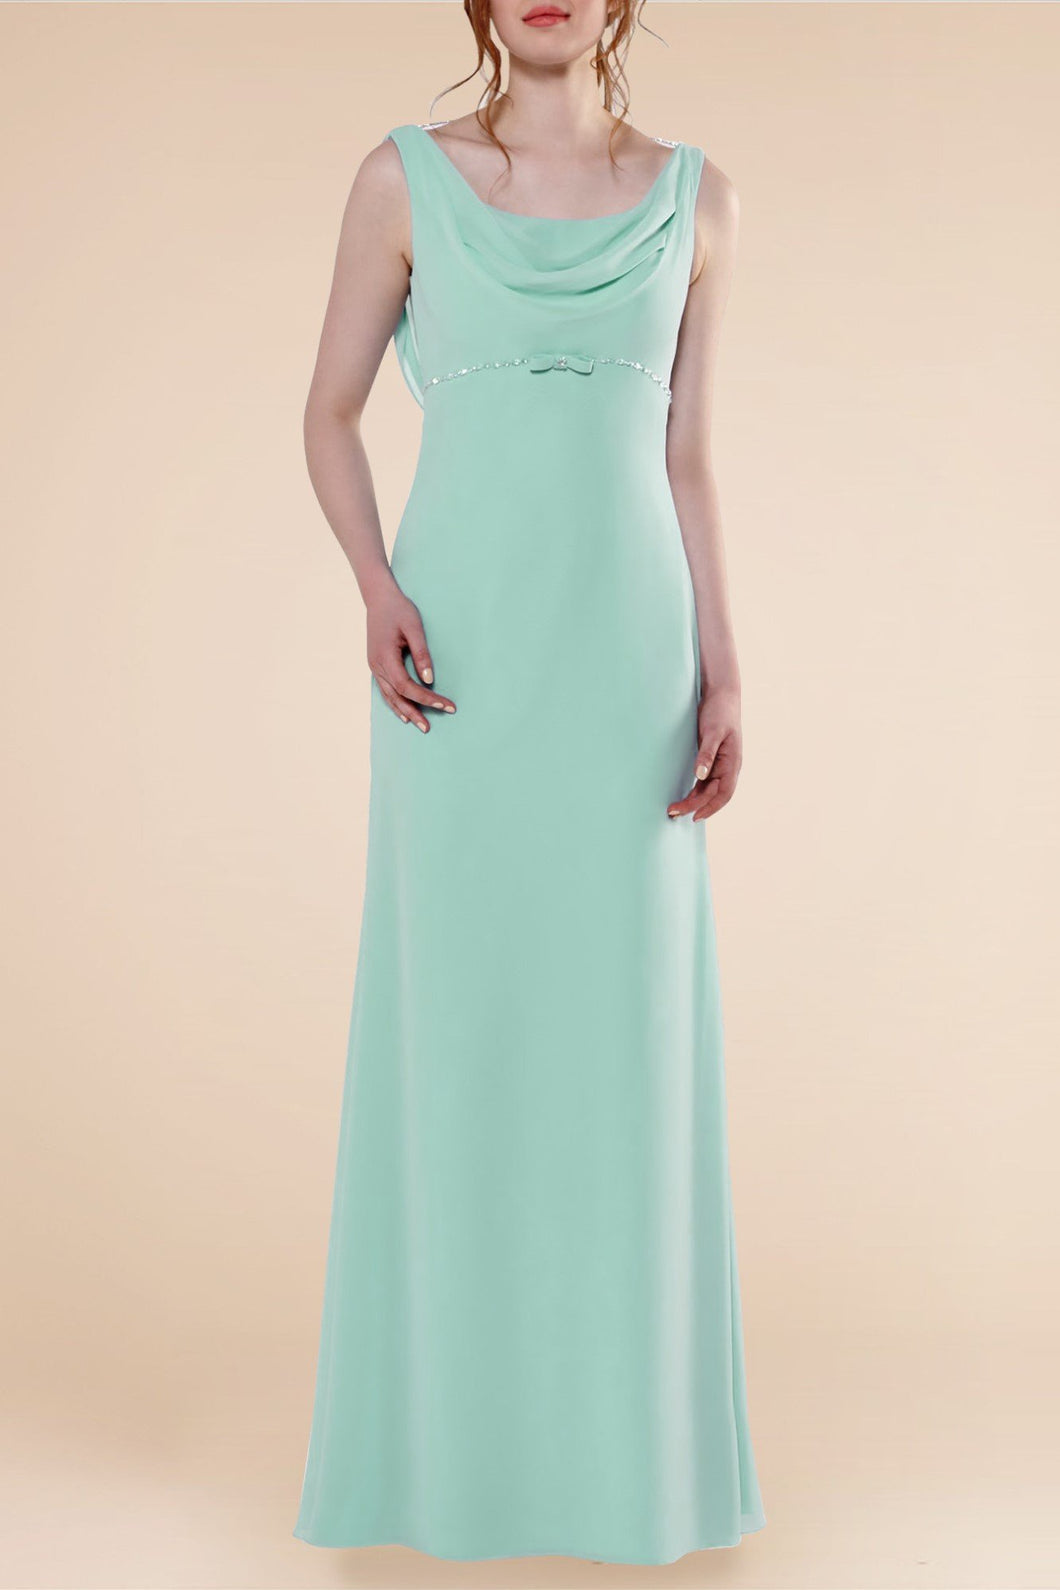 Sheath Cowl Neck Full-Length Bridesmaid Dress With Beads